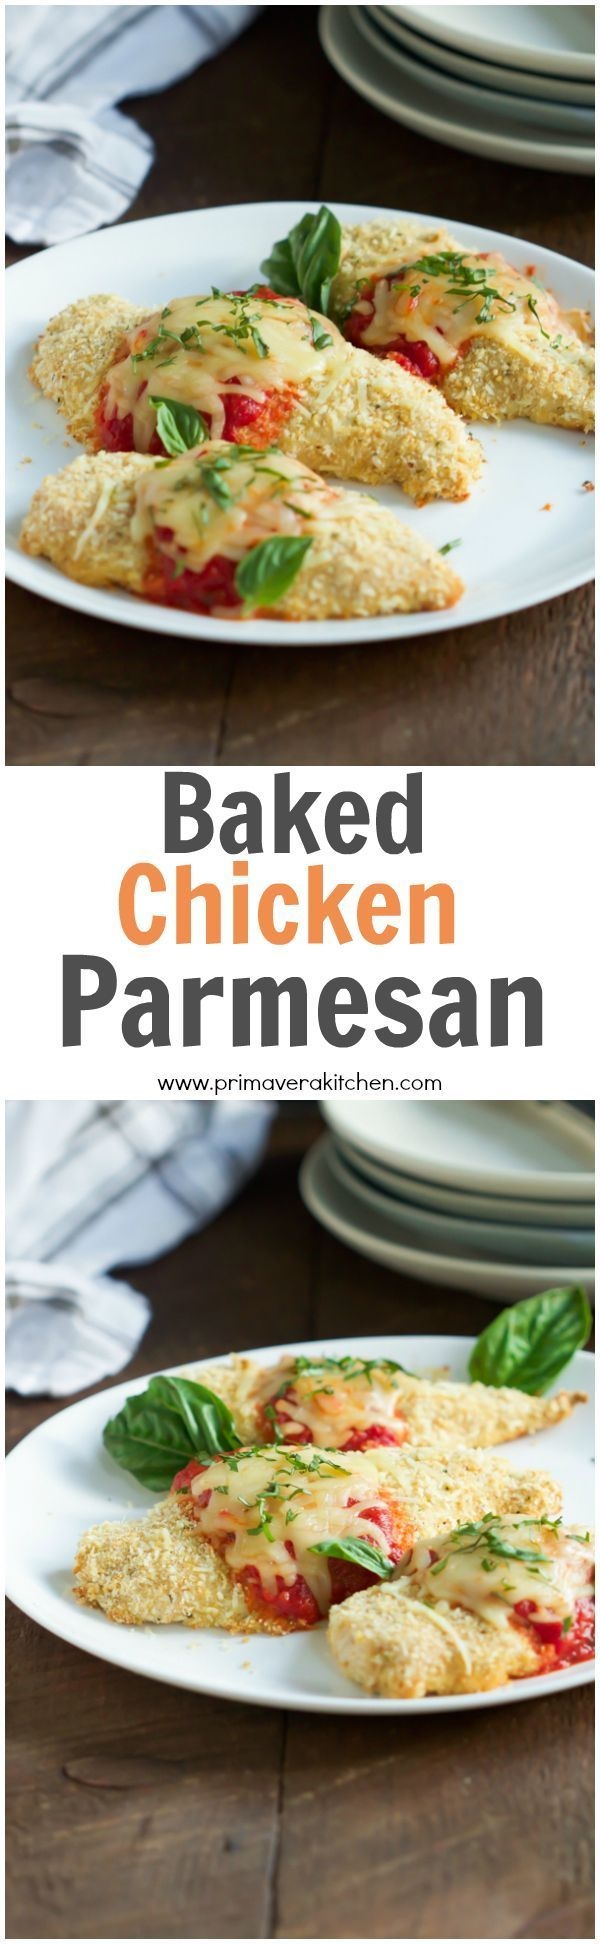 Baked Chicken Parmesan - This Baked Chicken Parmesan is light version of the traditional Italian recipes, because it��s made in the oven instead of frying. It��s also ultra-easy during your busy weeknight.